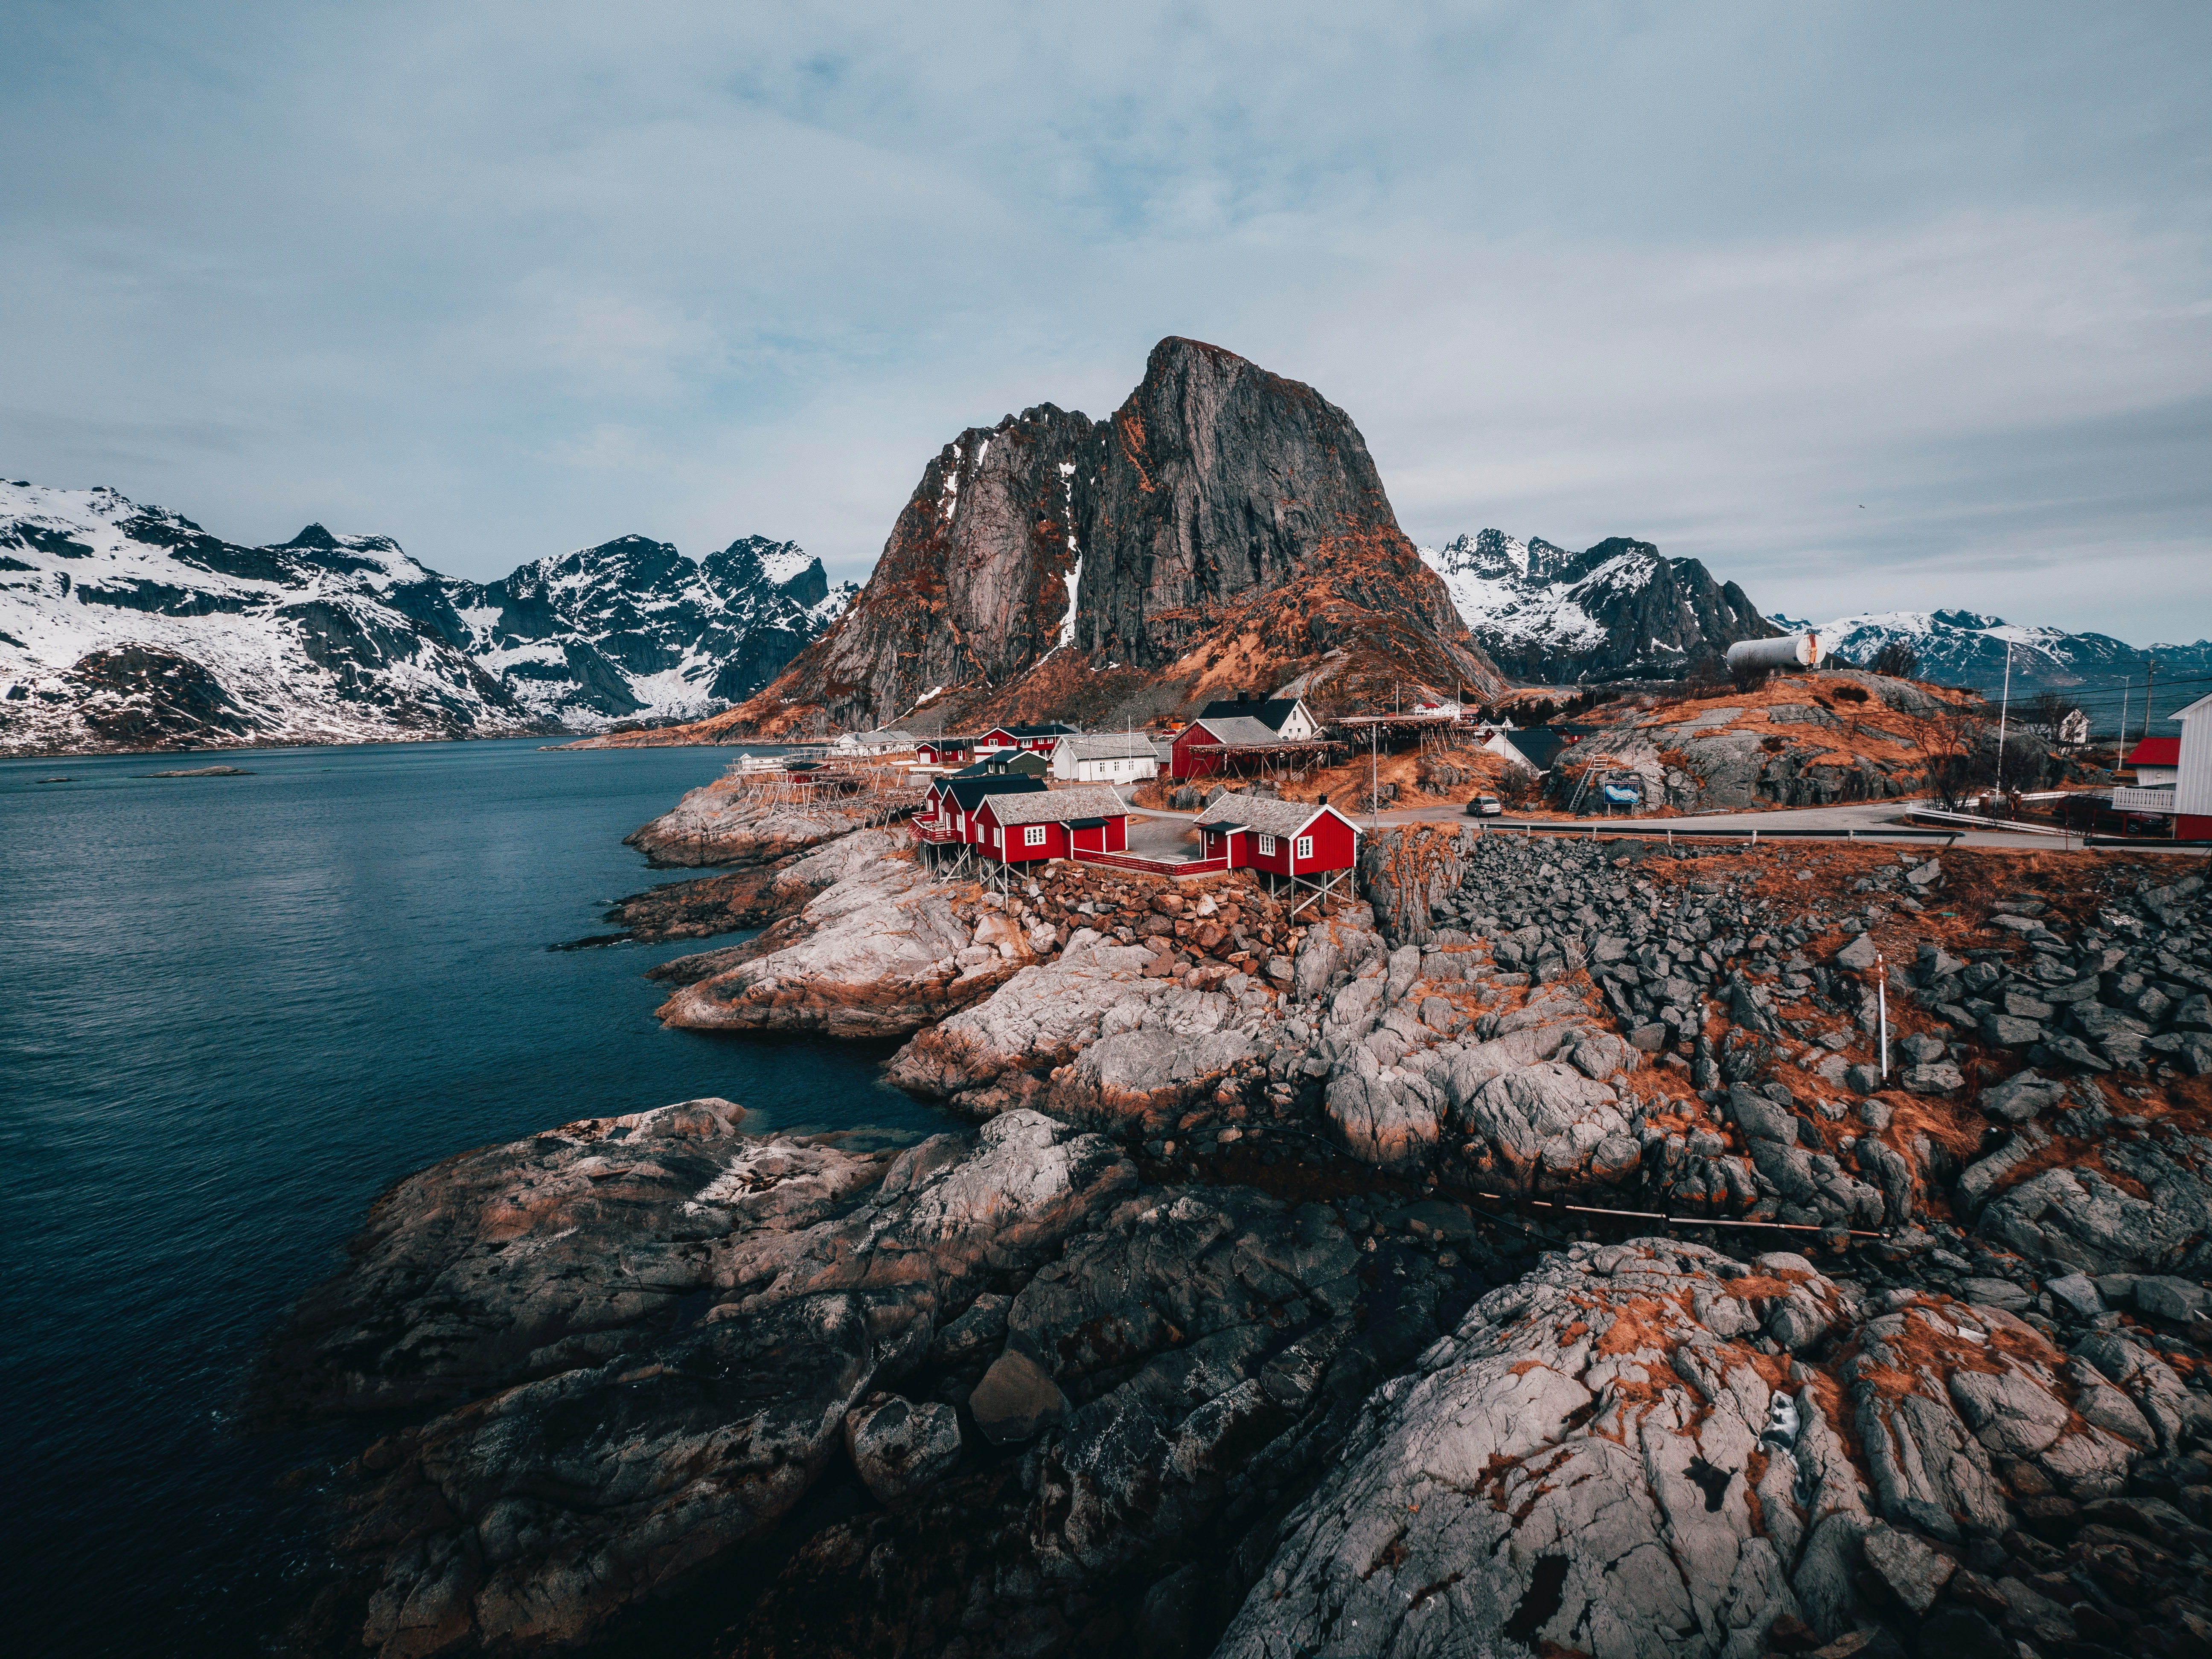 135386 download wallpaper Nature, Mountains, Rocks, Journey, Relaxation, Rest, Norway, Buildings, Lofoten Islands, Svolver screensavers and pictures for free